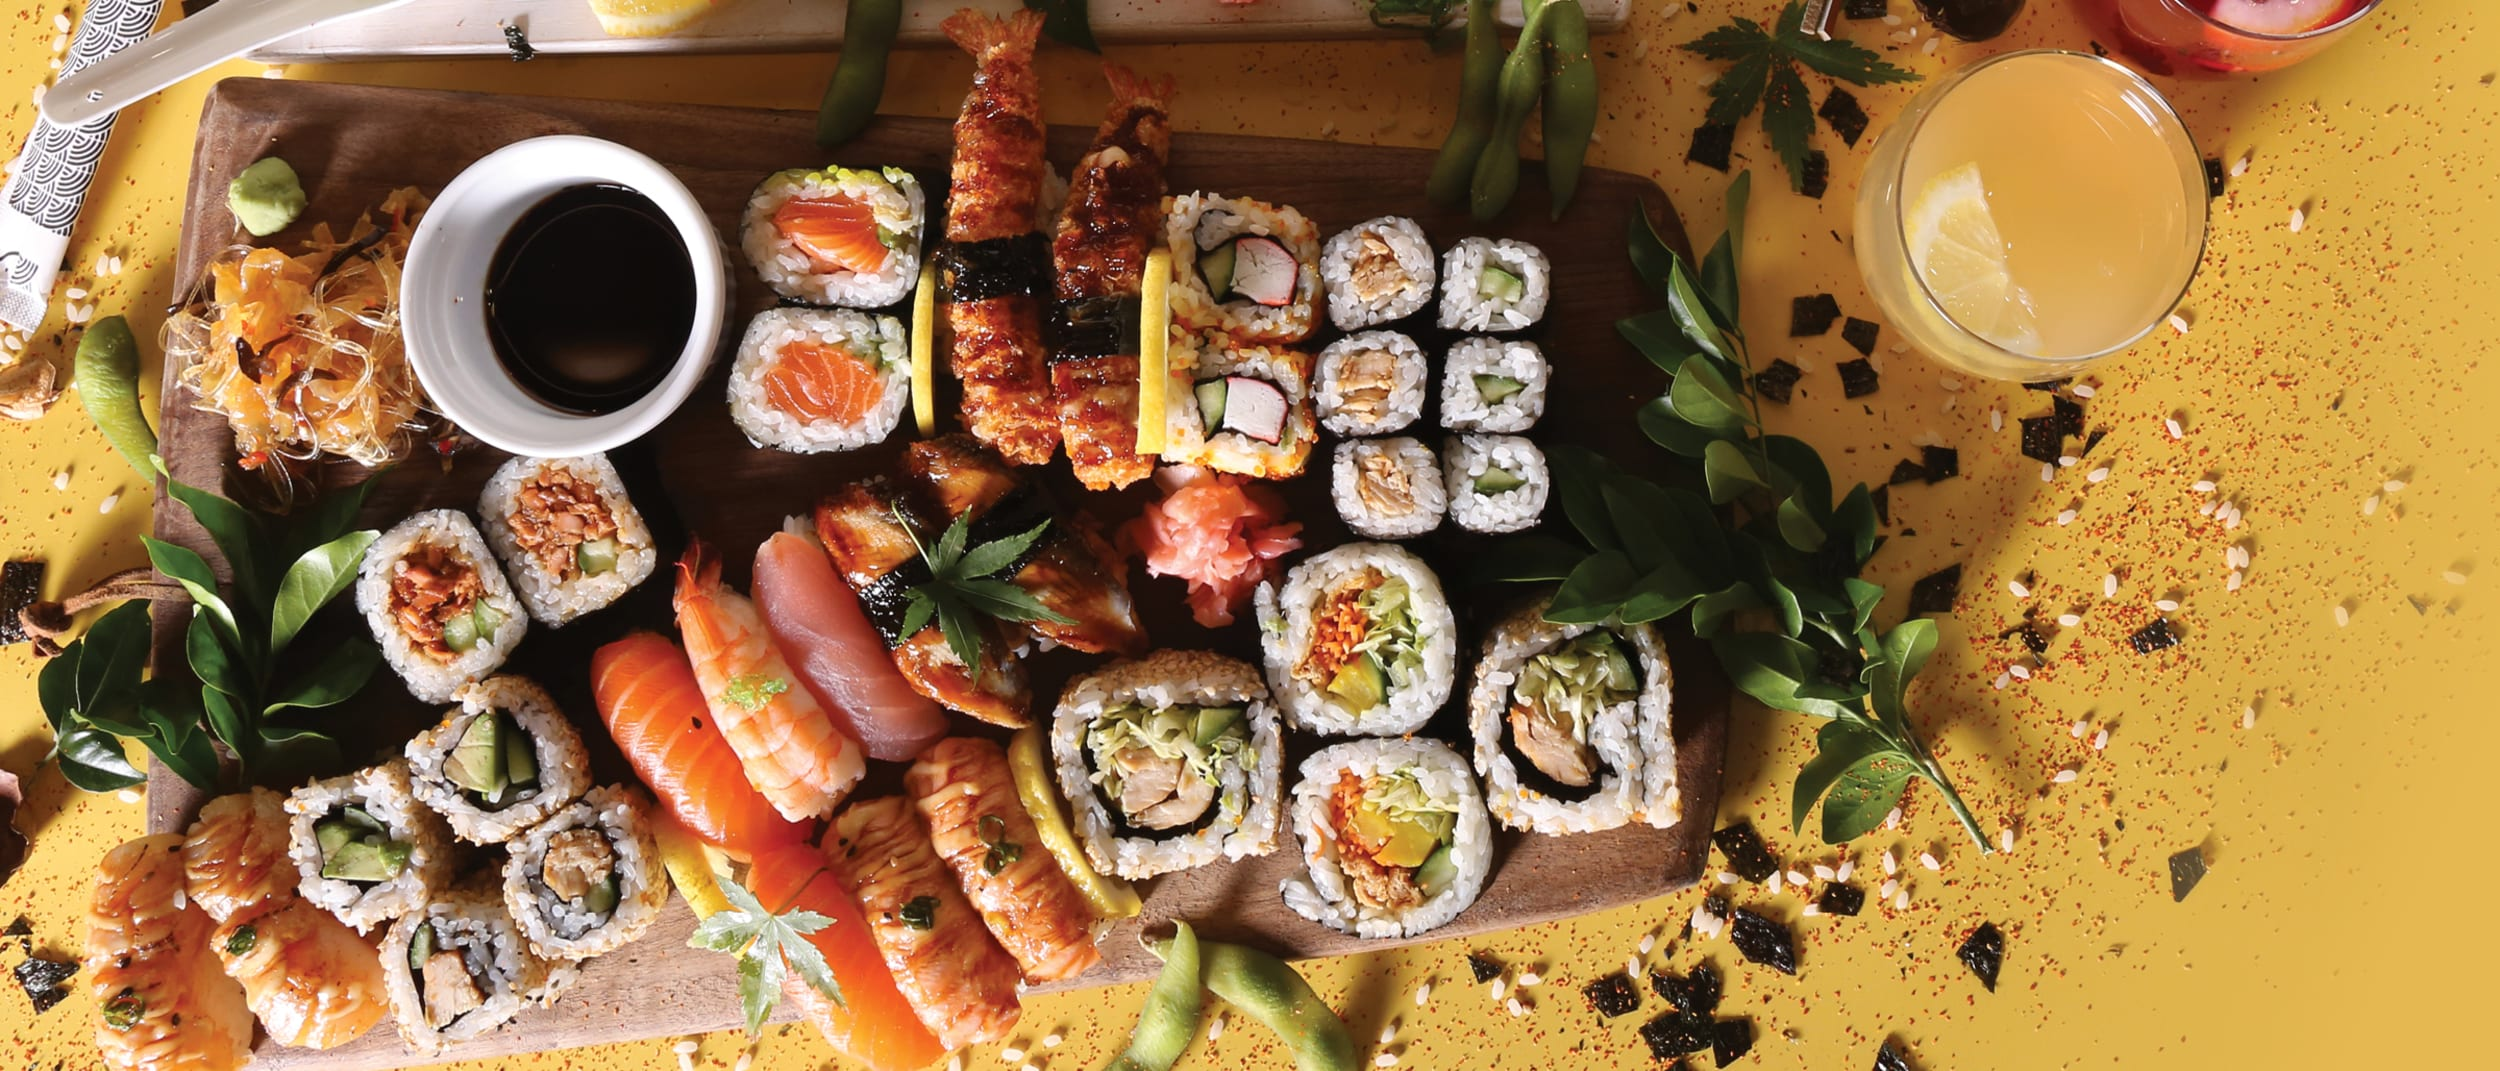 Sushi Hub: Free miso when you spend over $15